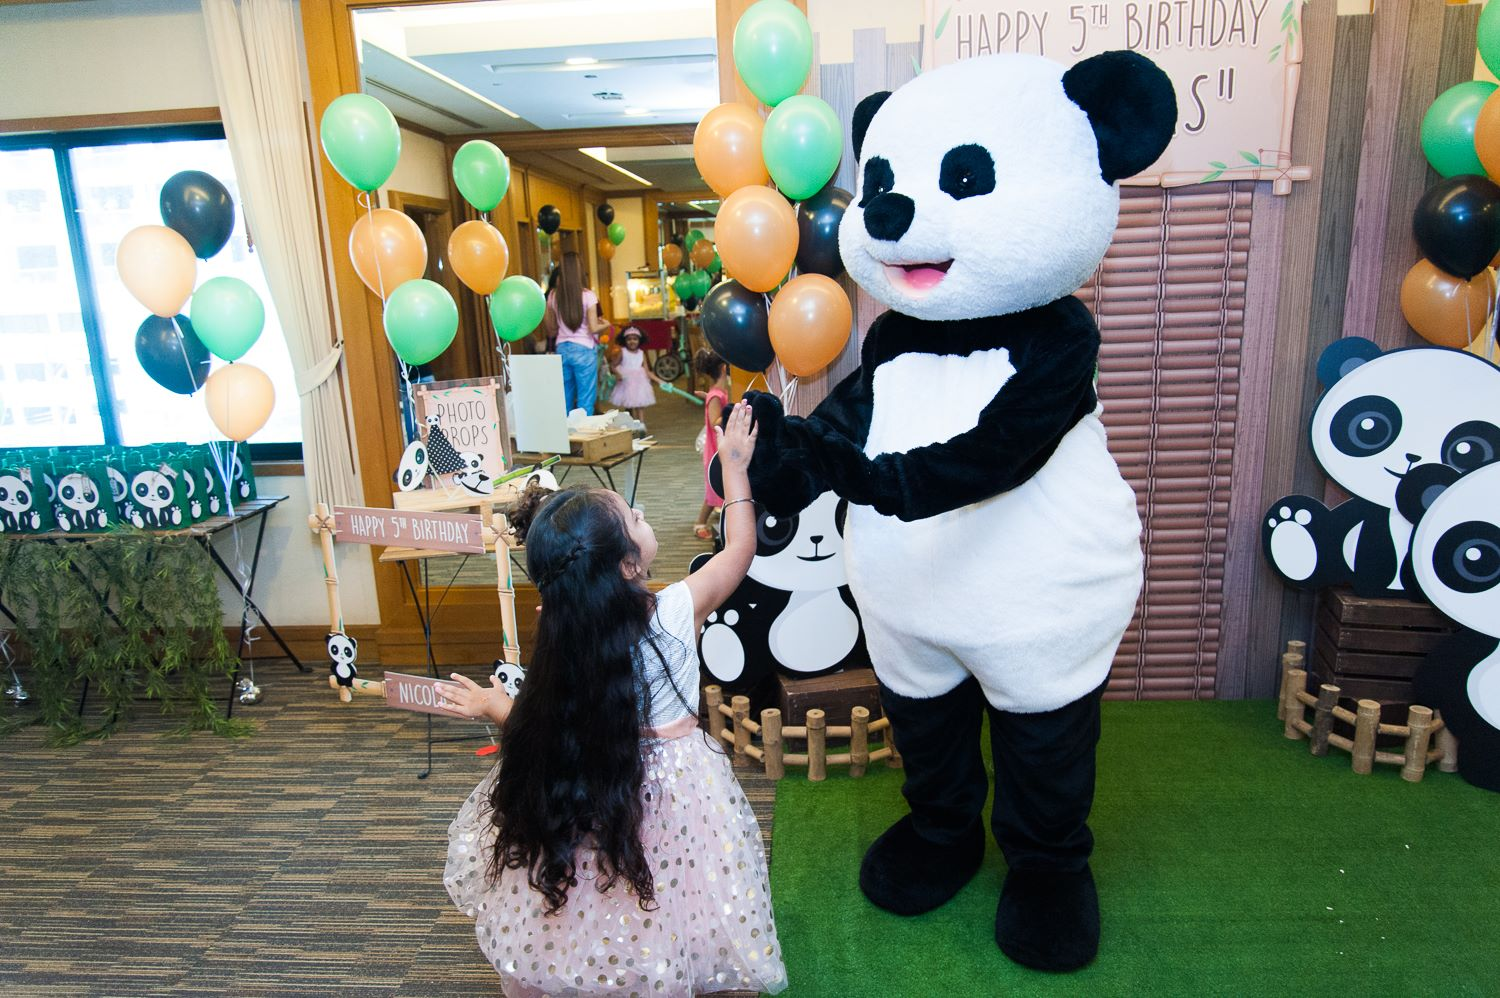 Surprise your kids with favorite animal birthday party, Panda theme and let us do the backdrop, balloons, mascot, games, food, desserts, drinks, birthday cake, goodie bags and all you want